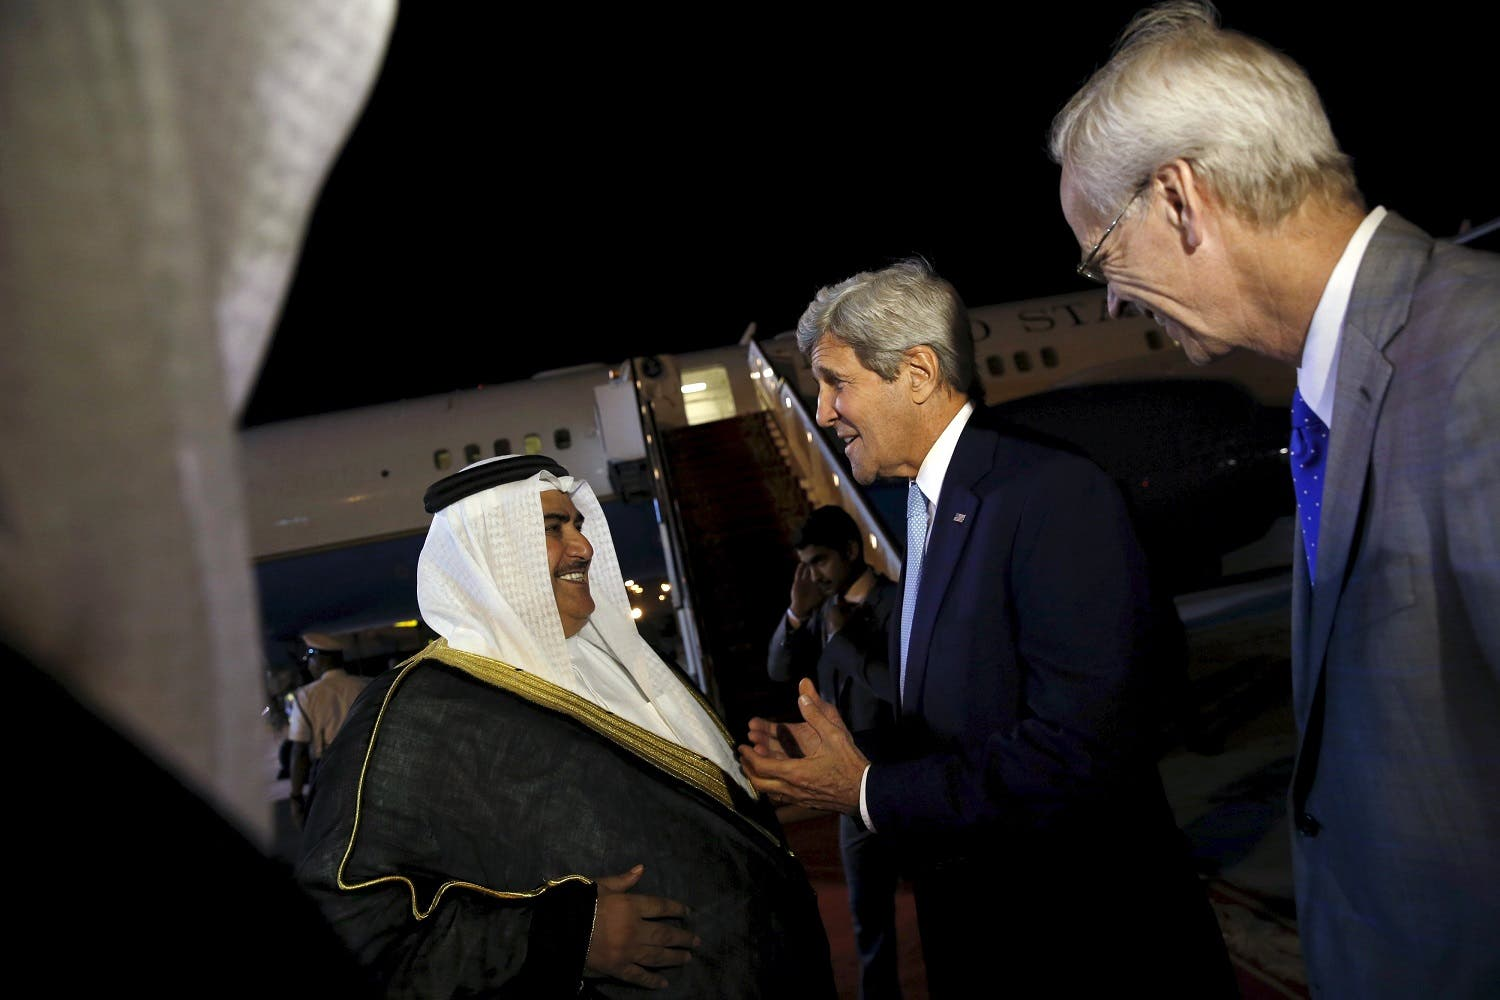 Bahrain's Foreign Minister Khalid bin Ahmed Al Khalifa (L) and U.S. Ambassador to Bahrain William Roebuck (R) greet US Secretary of State John Kerry. (Reuters)